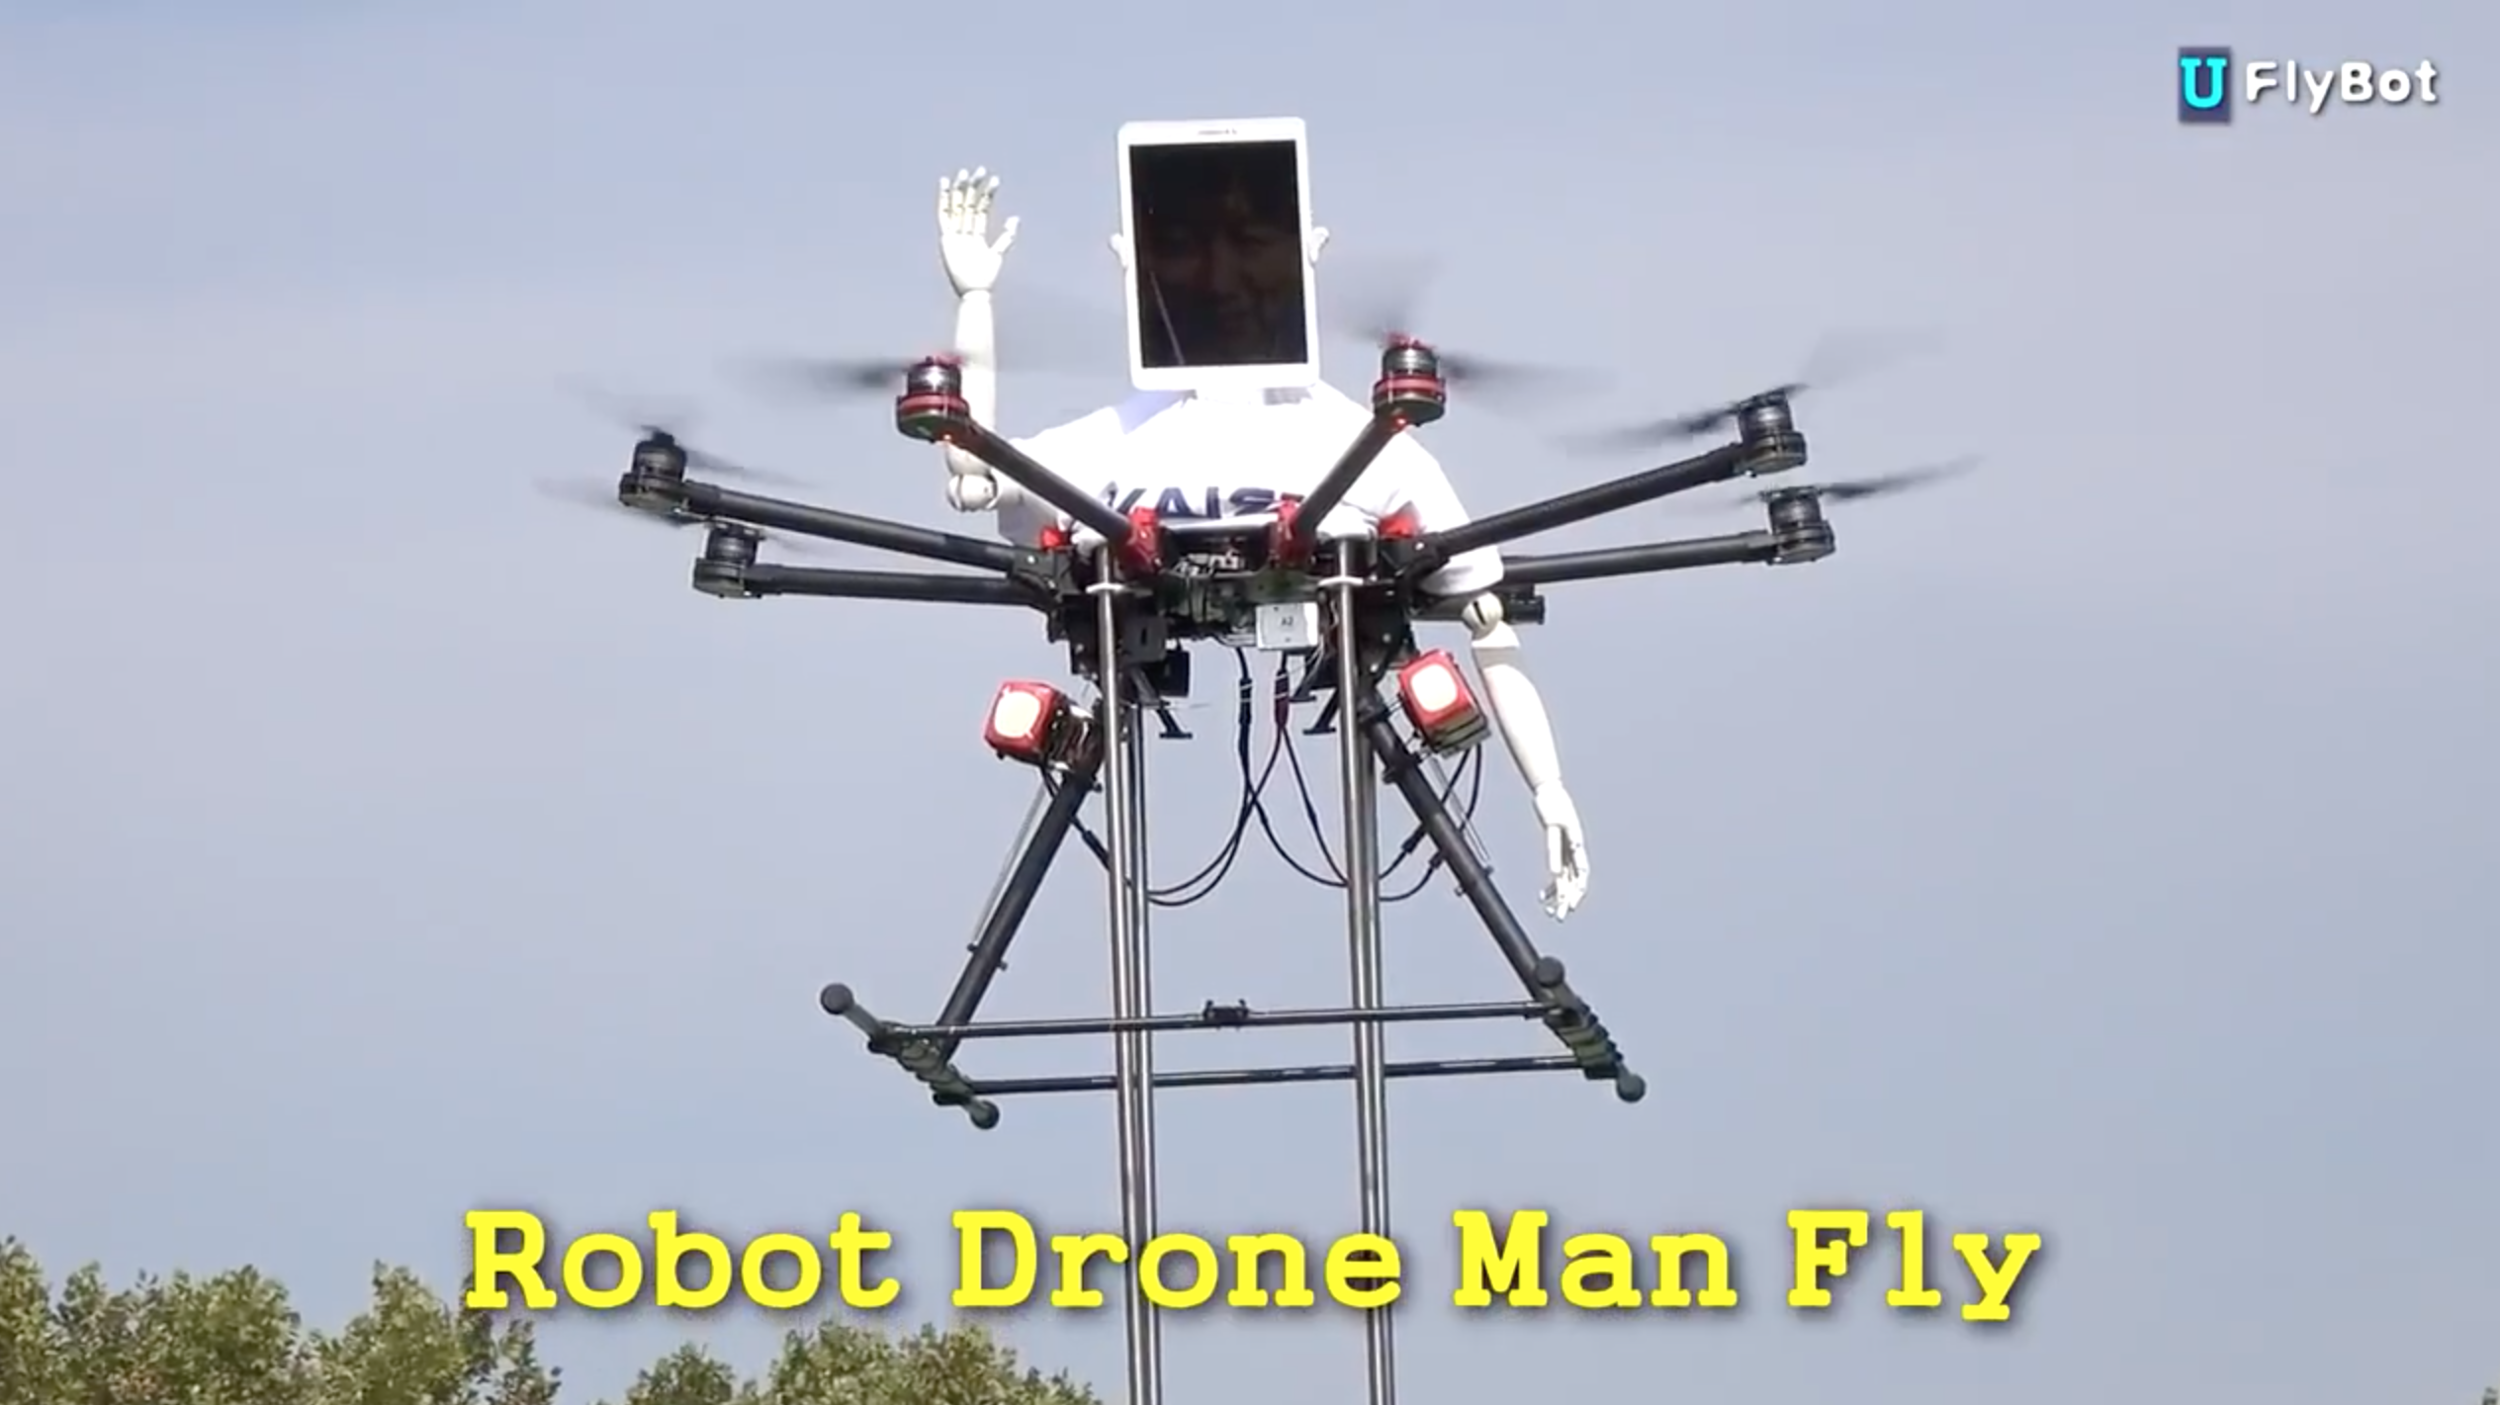 BEST TECHNOLOGY: Robot Drone Man